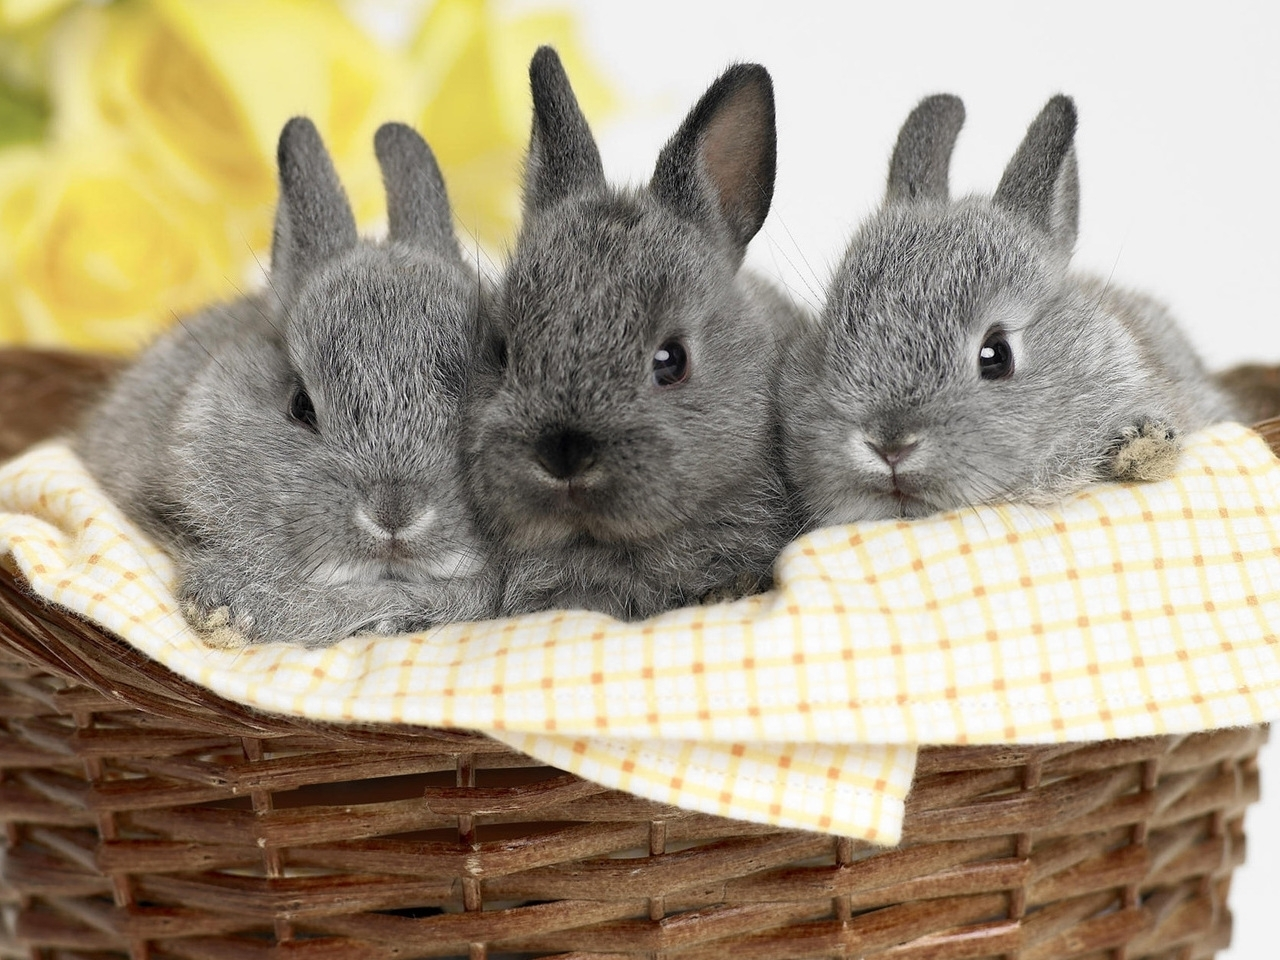 47070 download wallpaper Animals, Rabbits screensavers and pictures for free